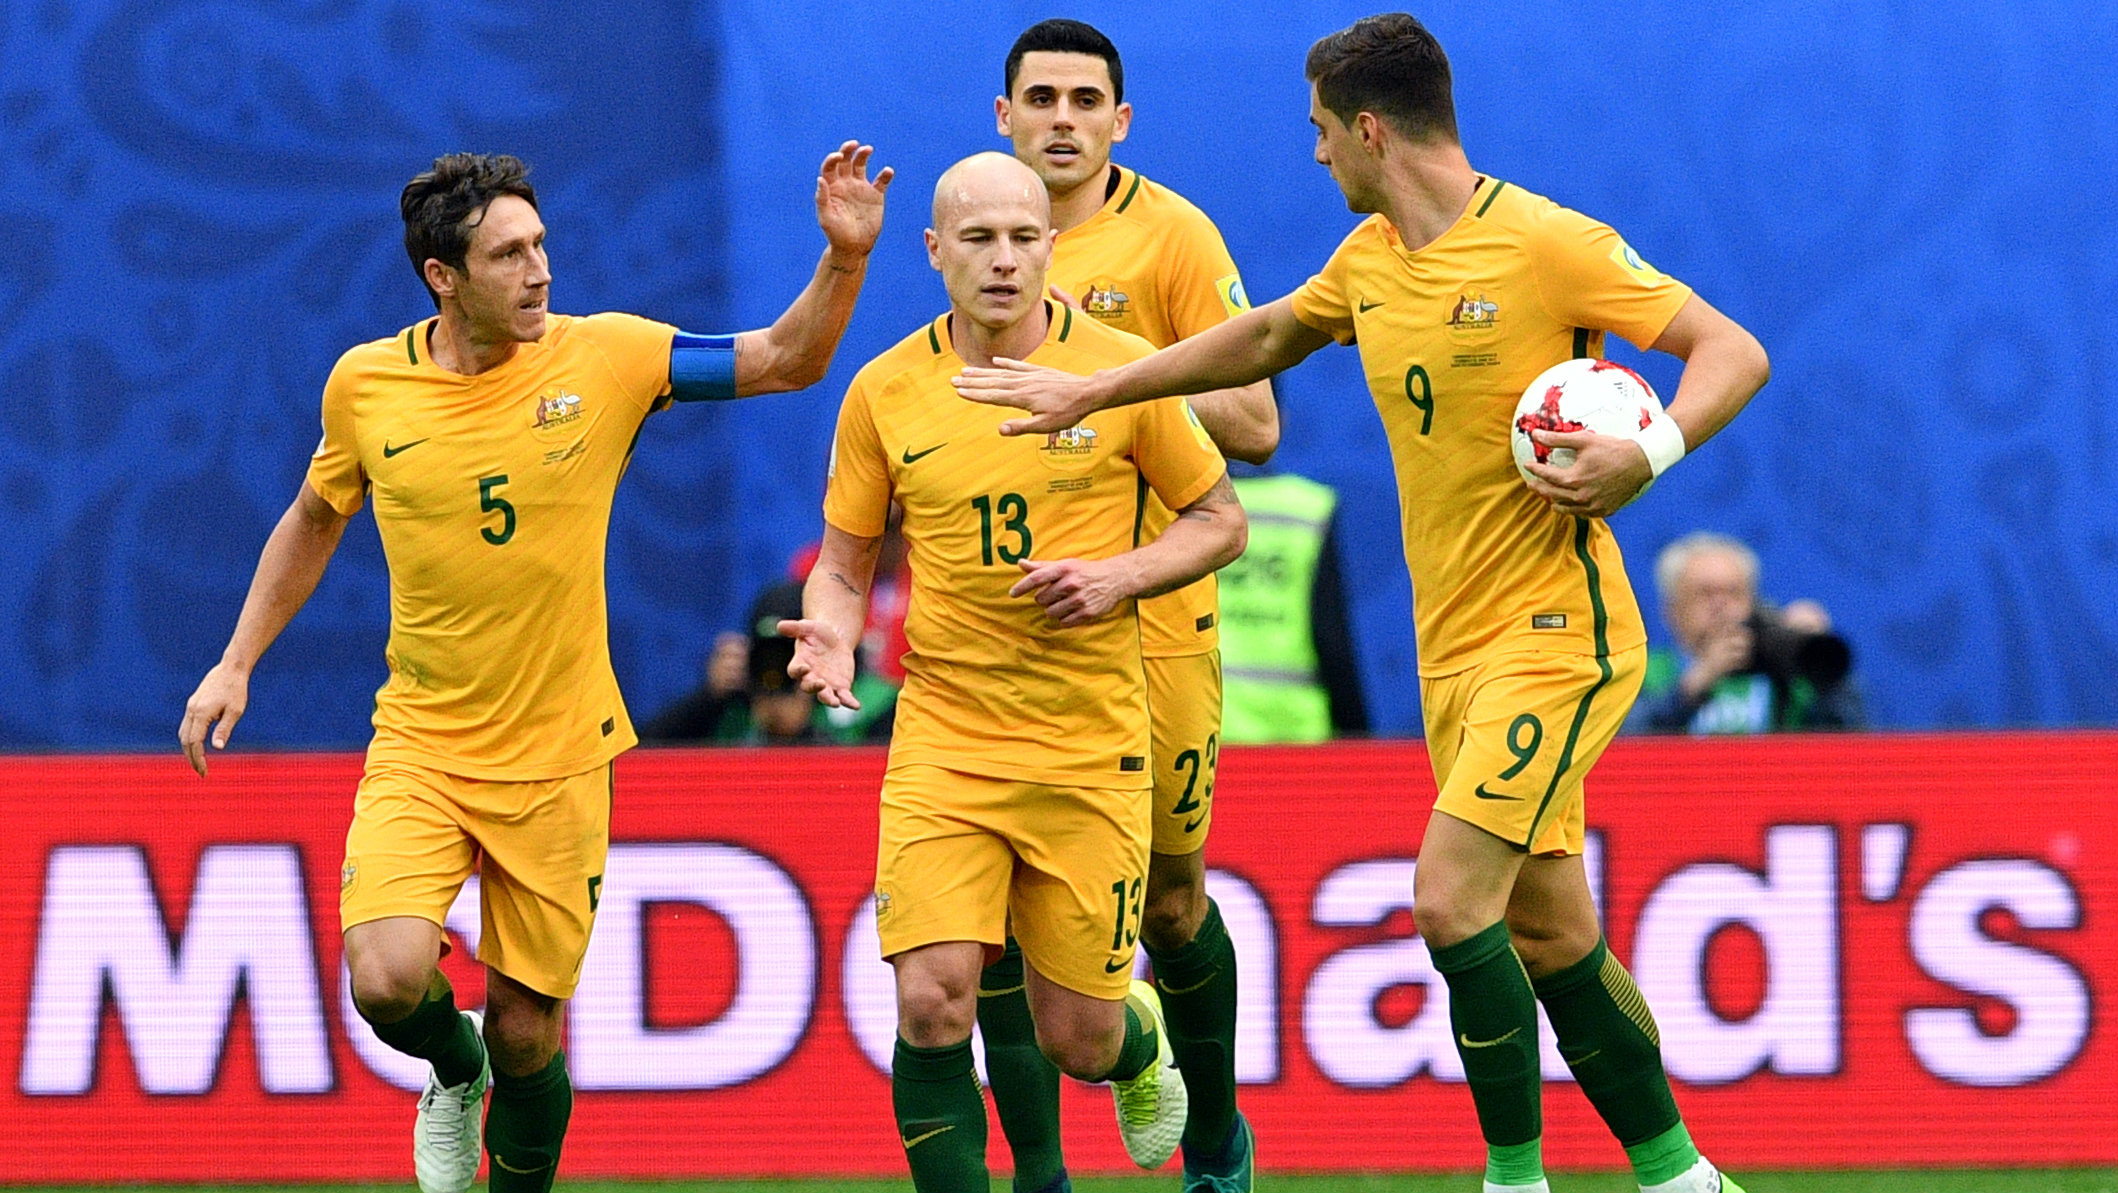 Australia can qualify for the 2018 FIFA World Cup with a win against Japan.